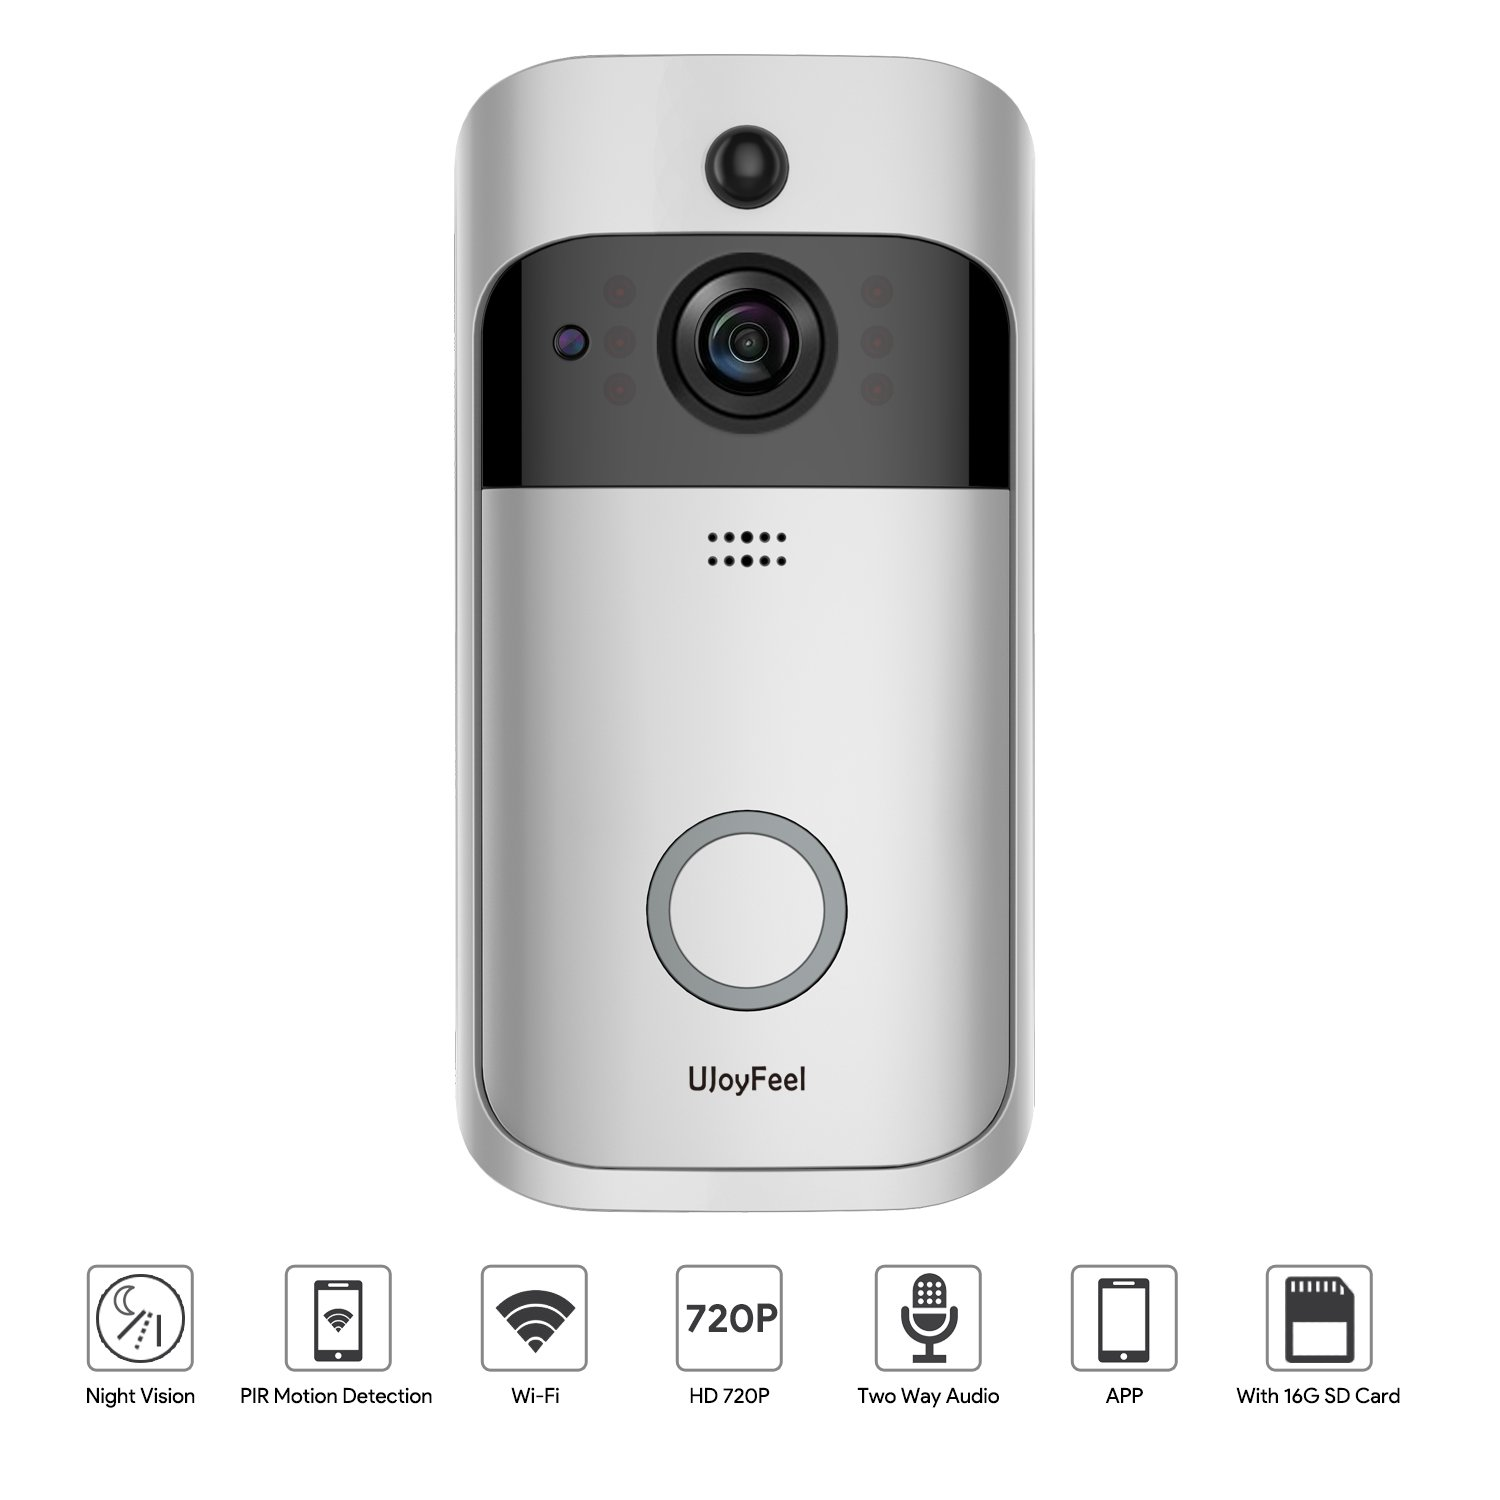 Video Doorbell Smart Wireless Doorbell Camera 720P Wifi Security Camera with 16GB Storage 2 Rechargeable Battery Night Vision PIR Motion Detection